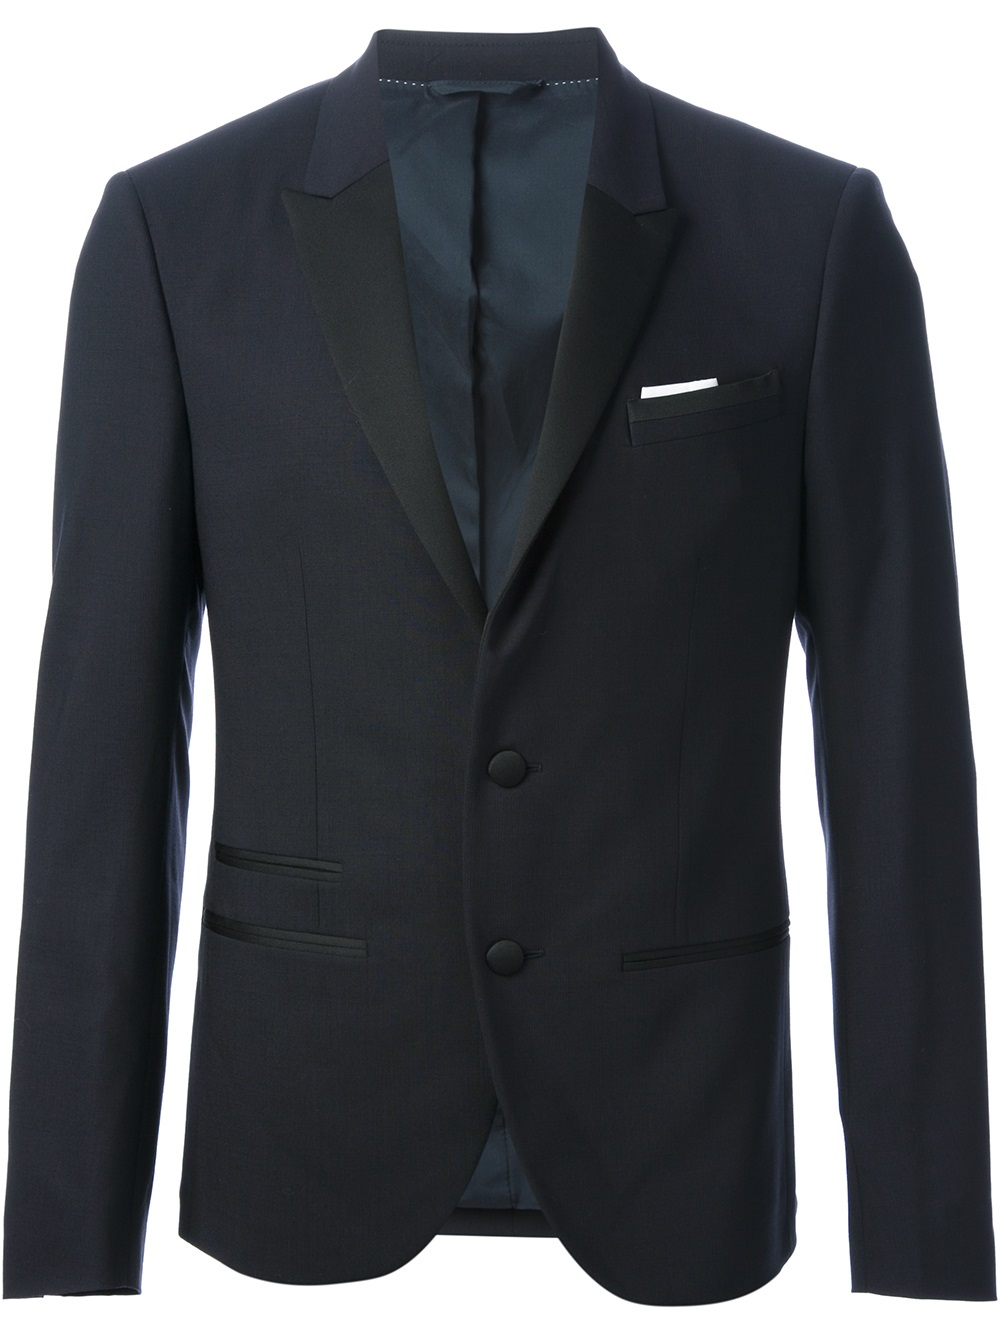 Lyst - Neil Barrett Classic Formal Blazer In Black For Men